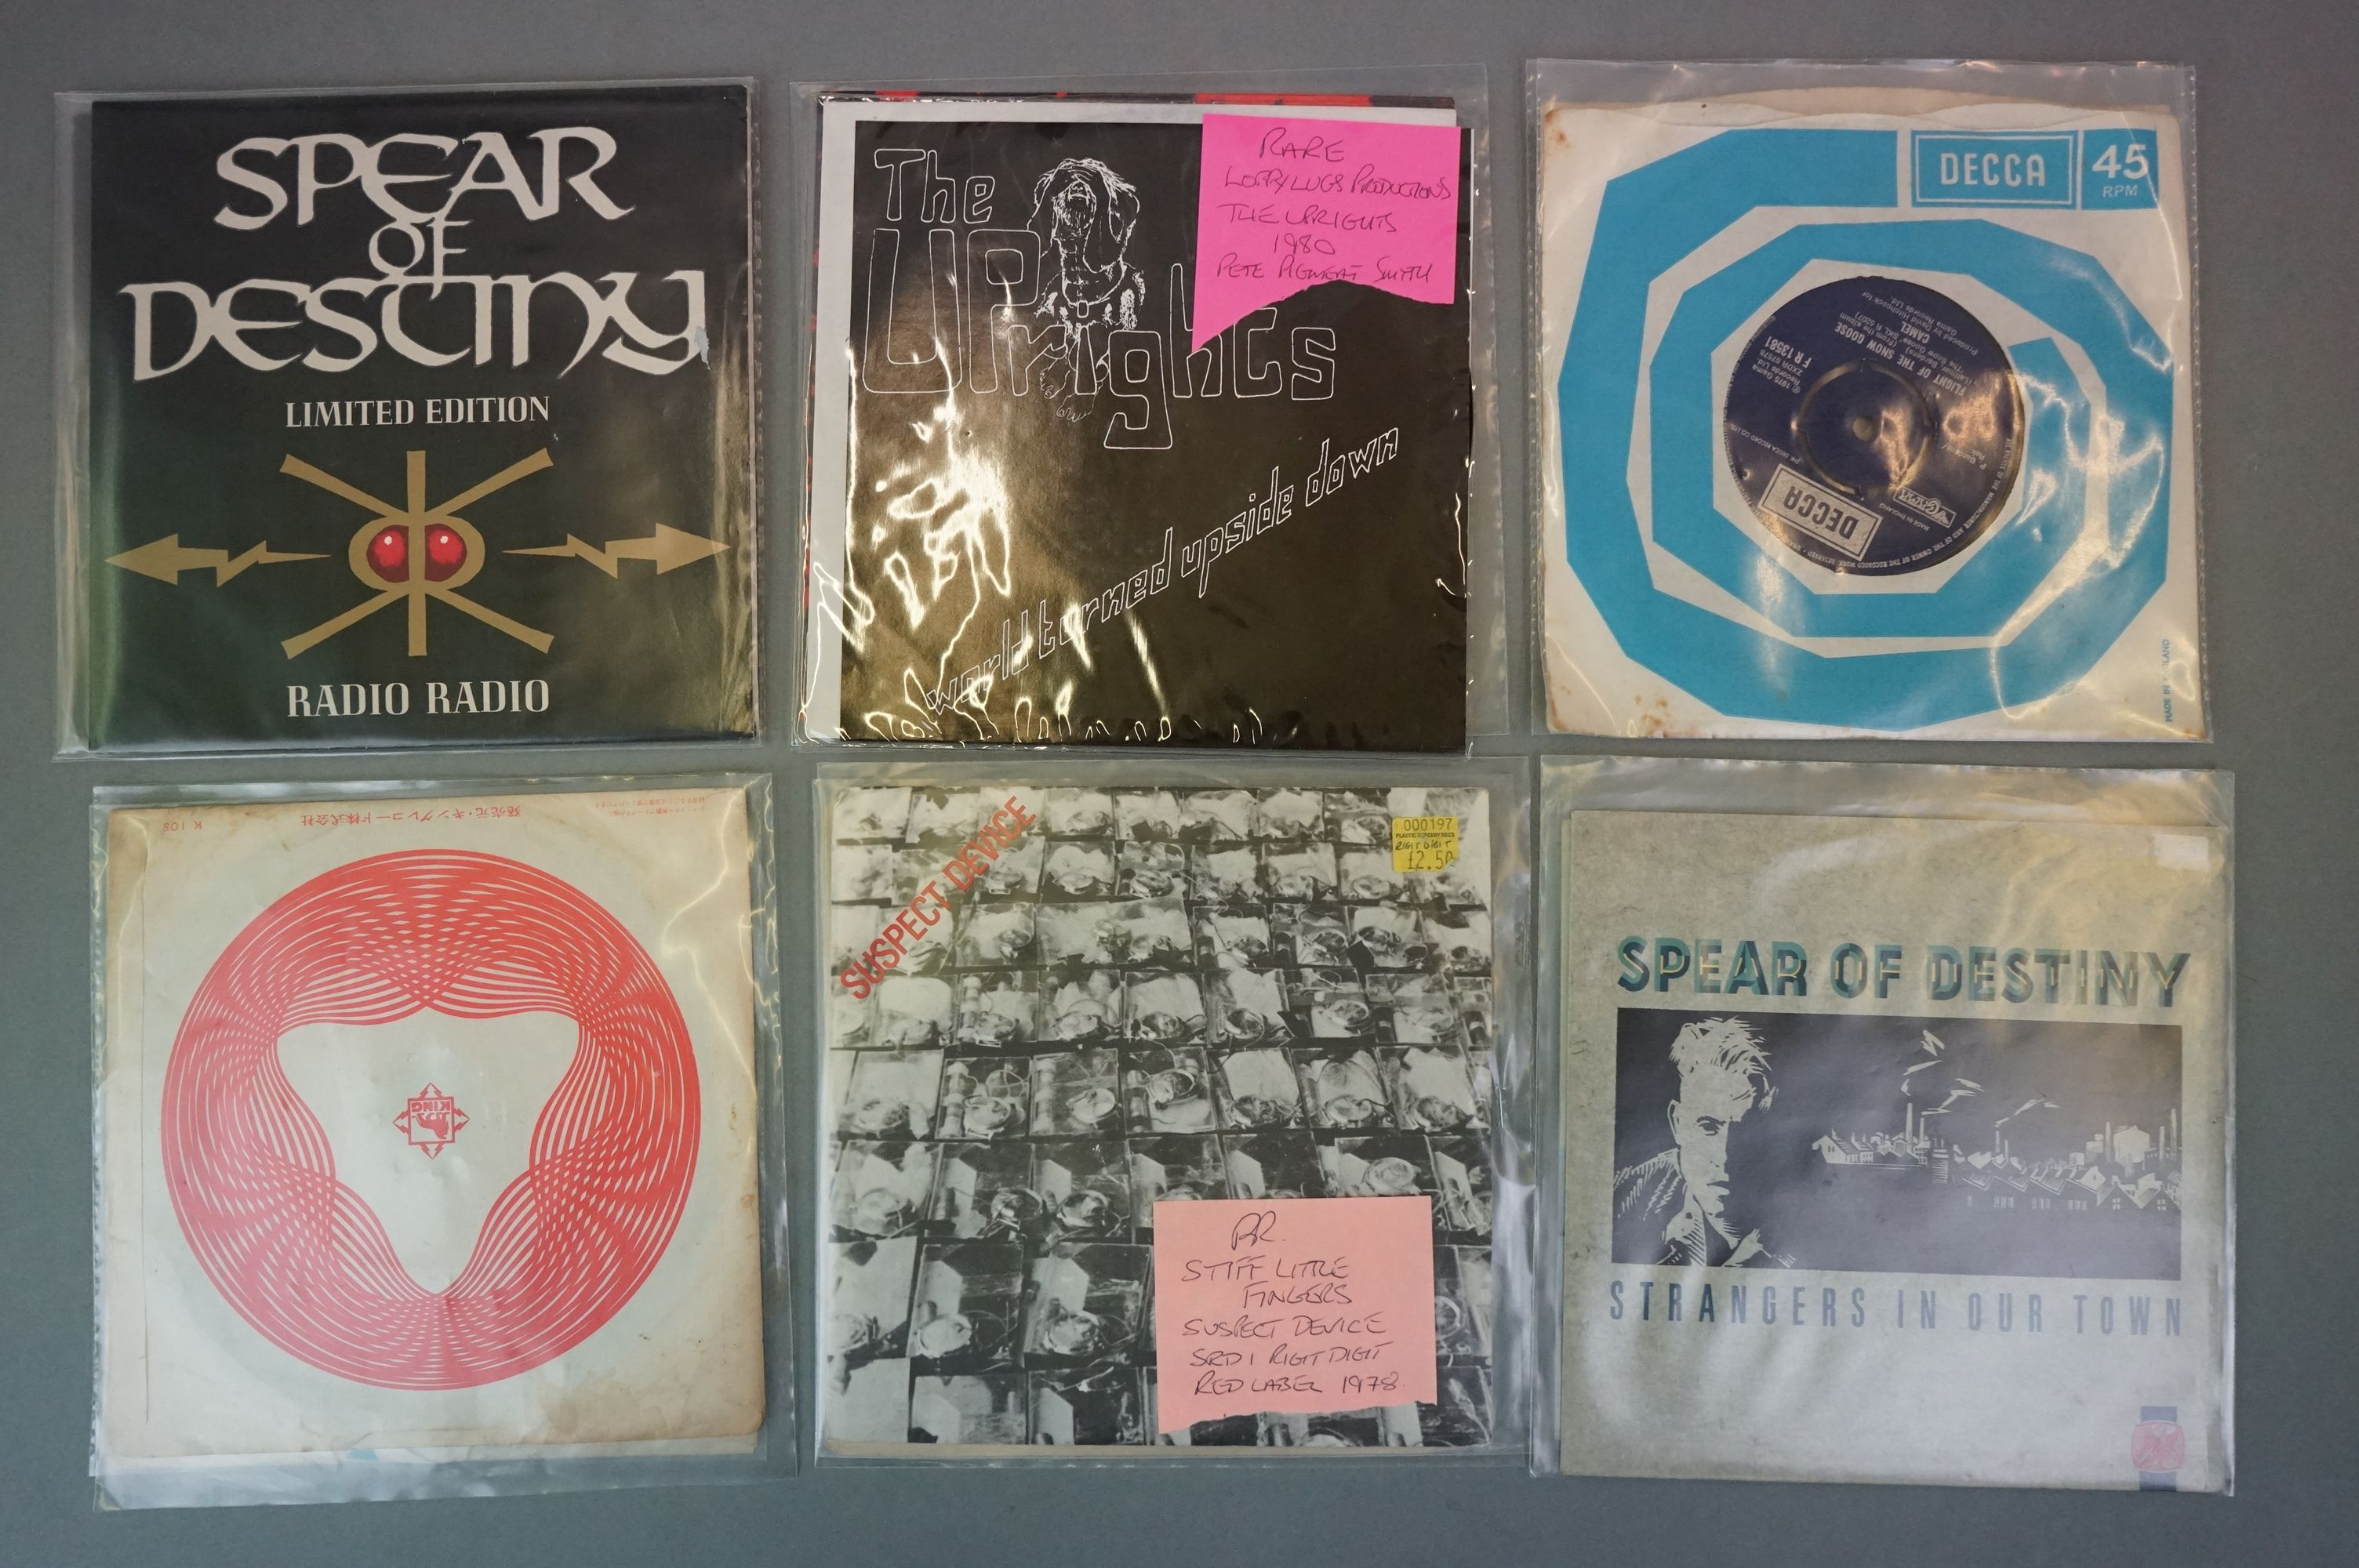 """Vinyl - Collection of approx 20 7"""" singles spanning genres and decades including 90's examples - Image 4 of 6"""